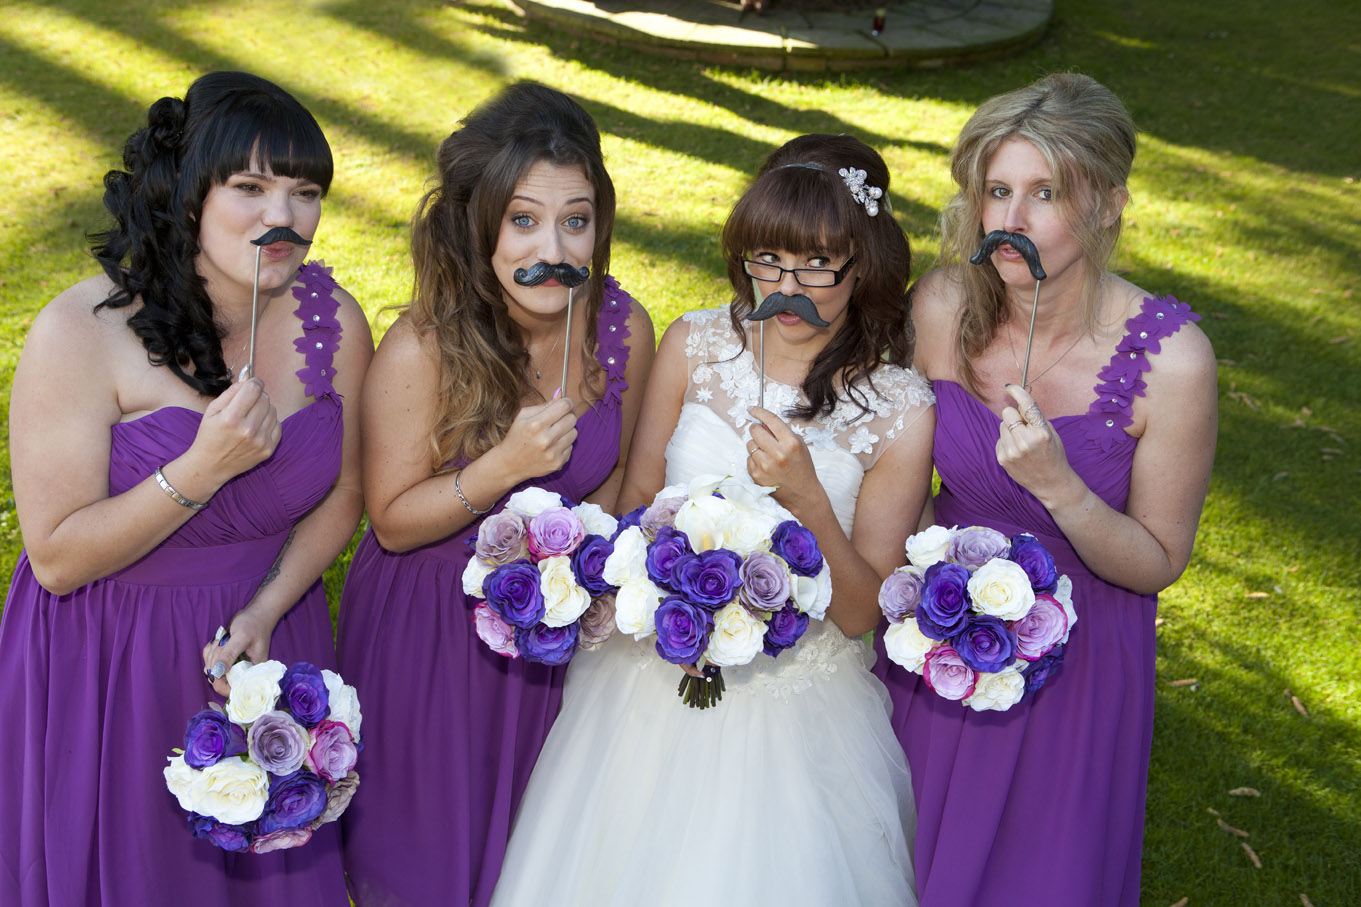 Bride with a sense of humour.